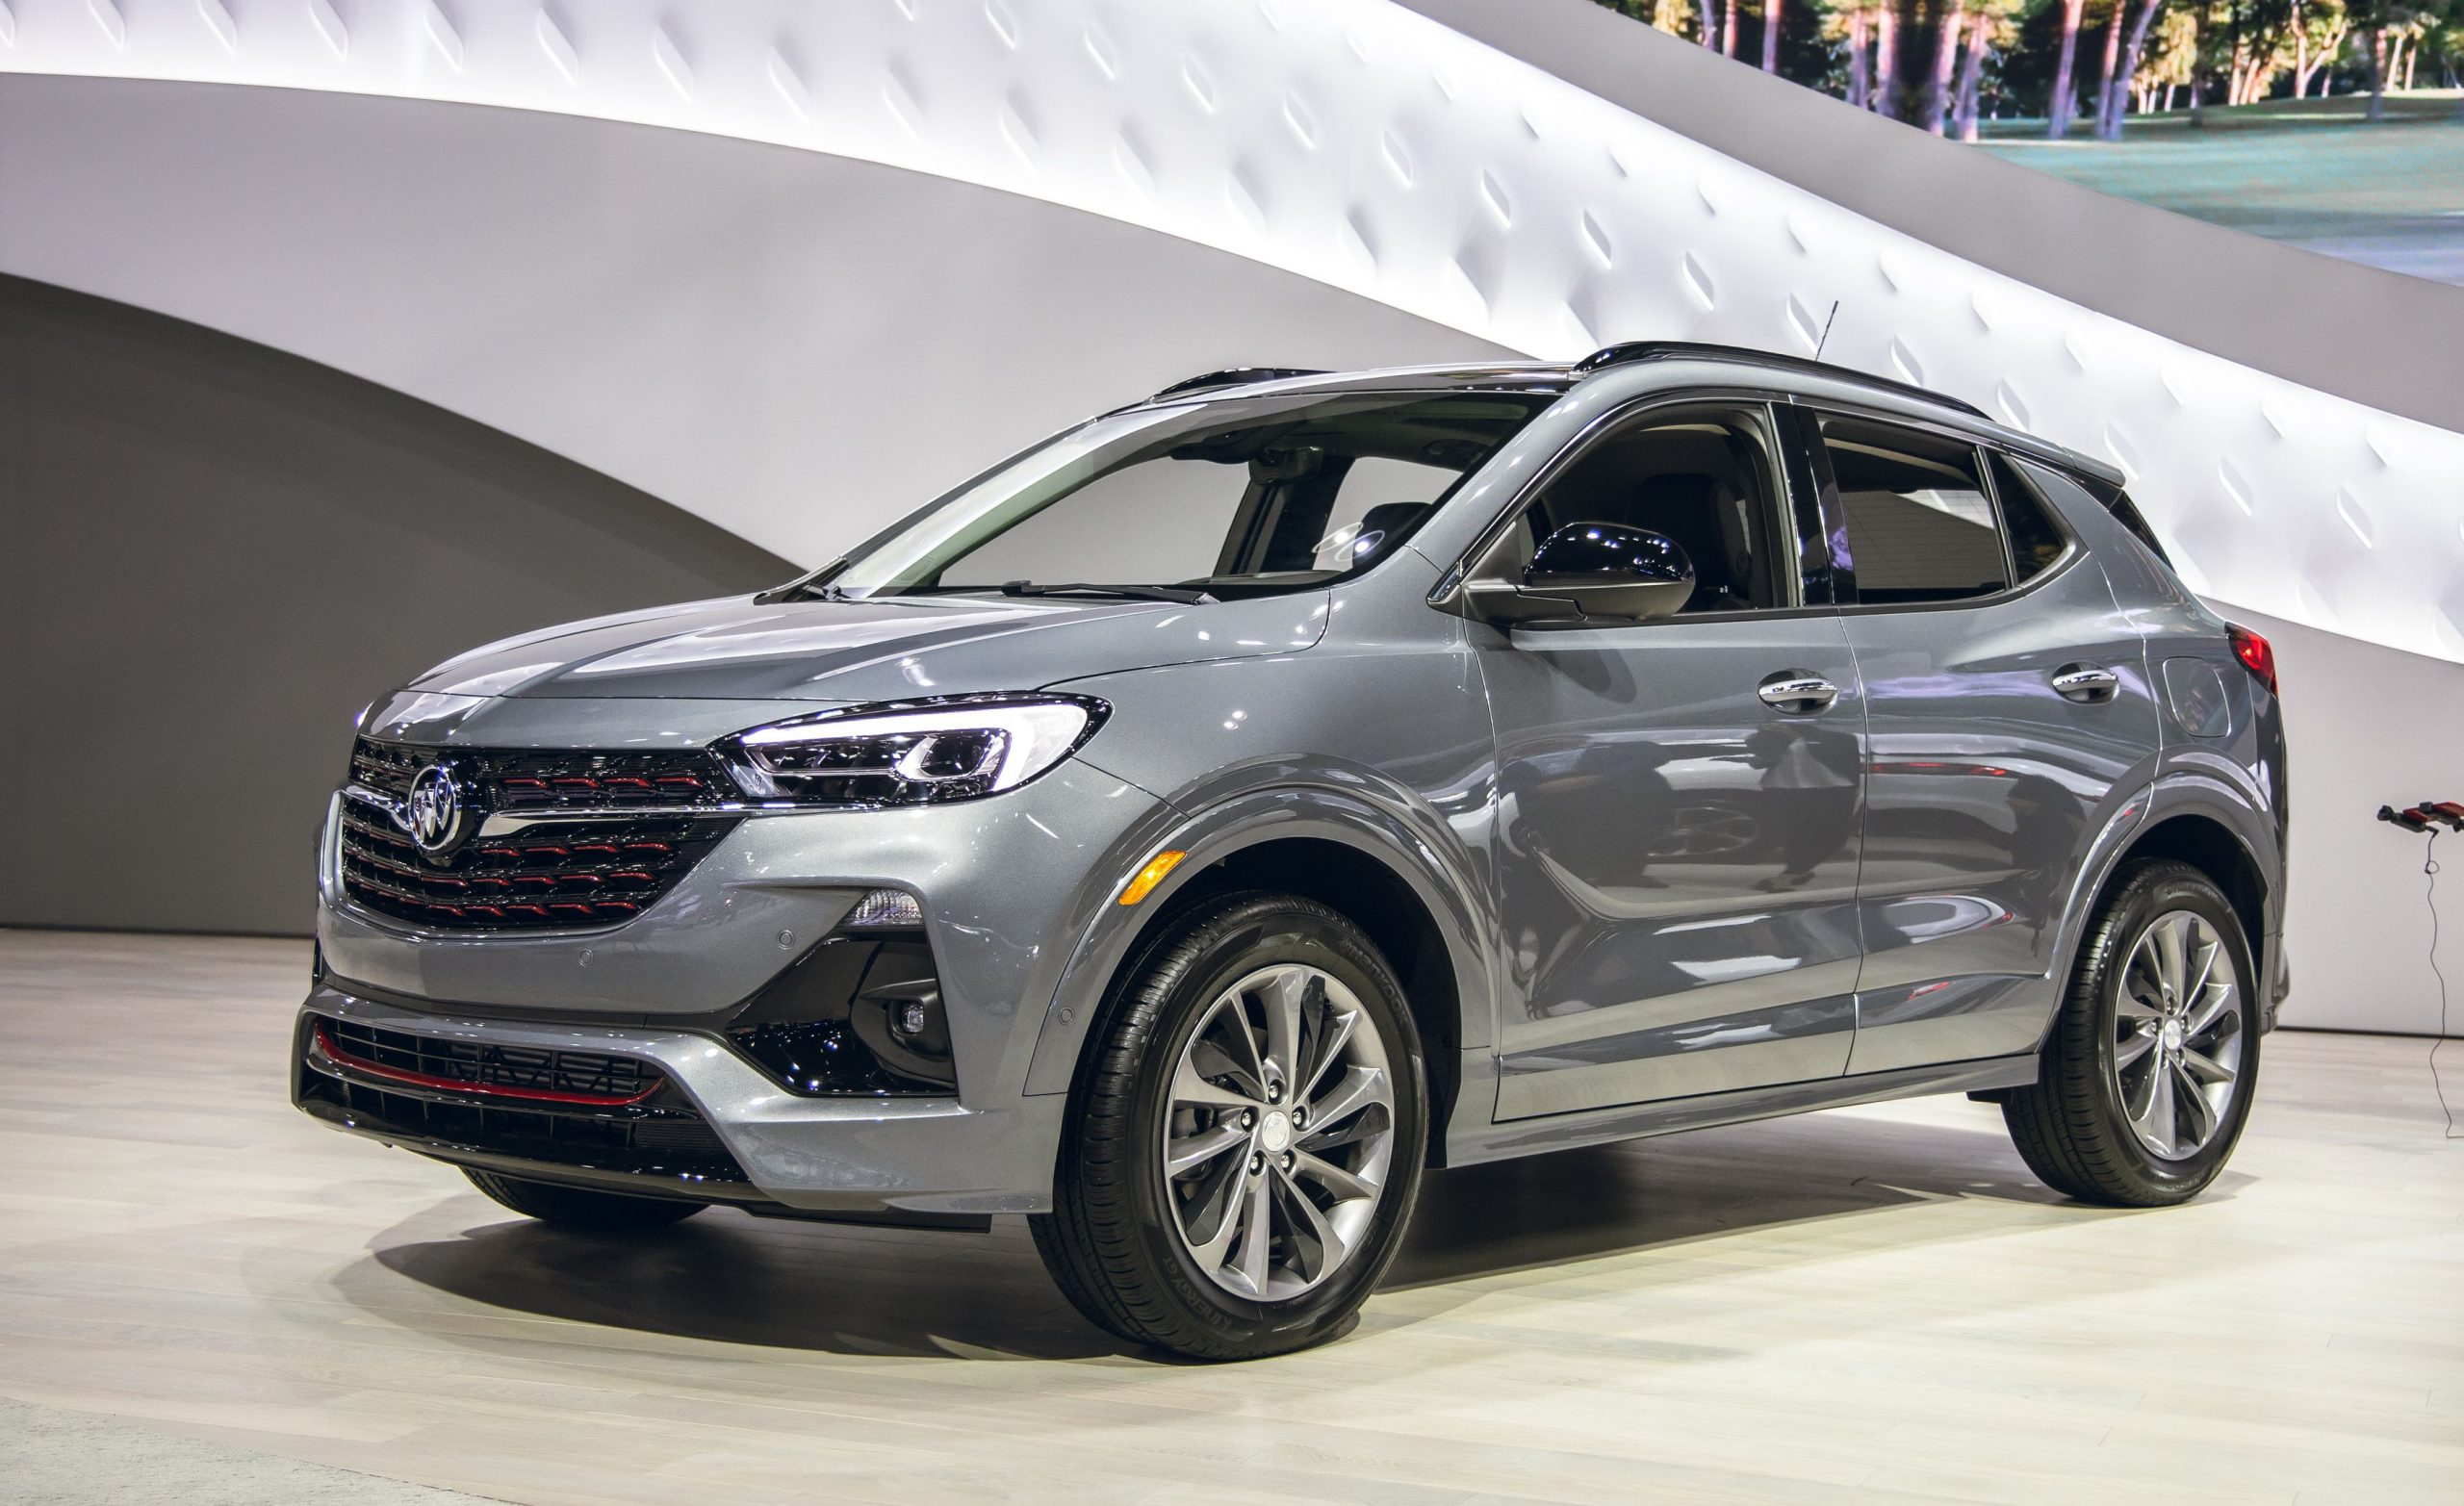 Buick Reveals More Details Of 2020 Encore Gx 2022 Buick Encore Gx Test Drive, Engine, Reviews